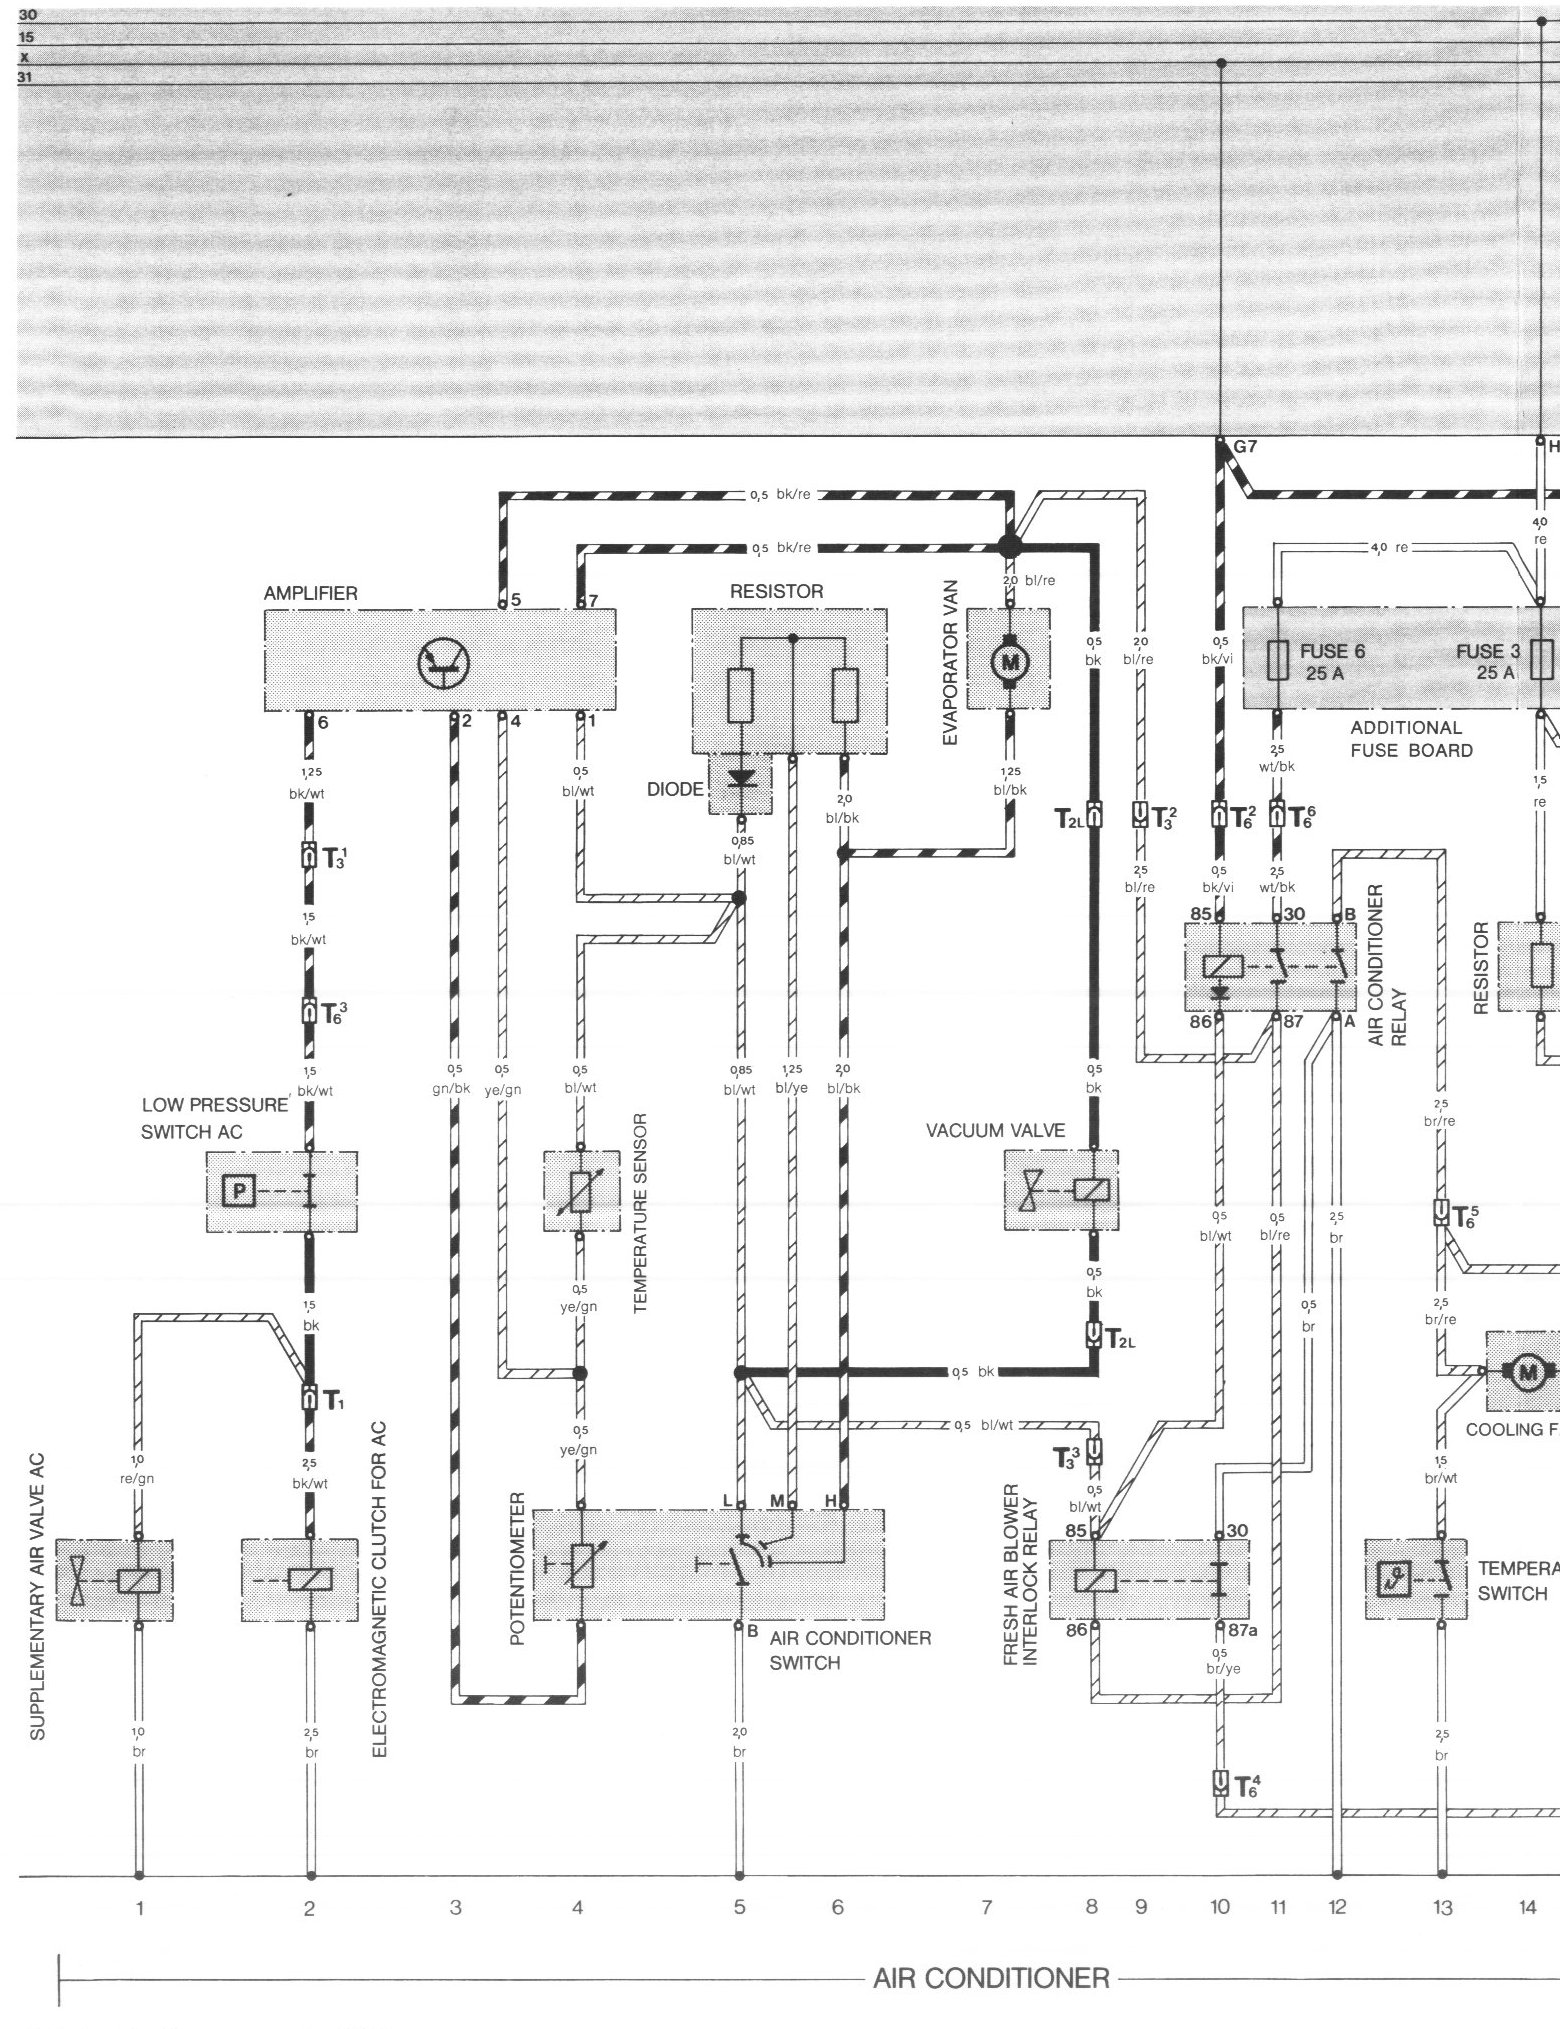 Pelican Parts Porsche 924 944 Electrical Diagrams Ac Schematic Wiring A C Page 1